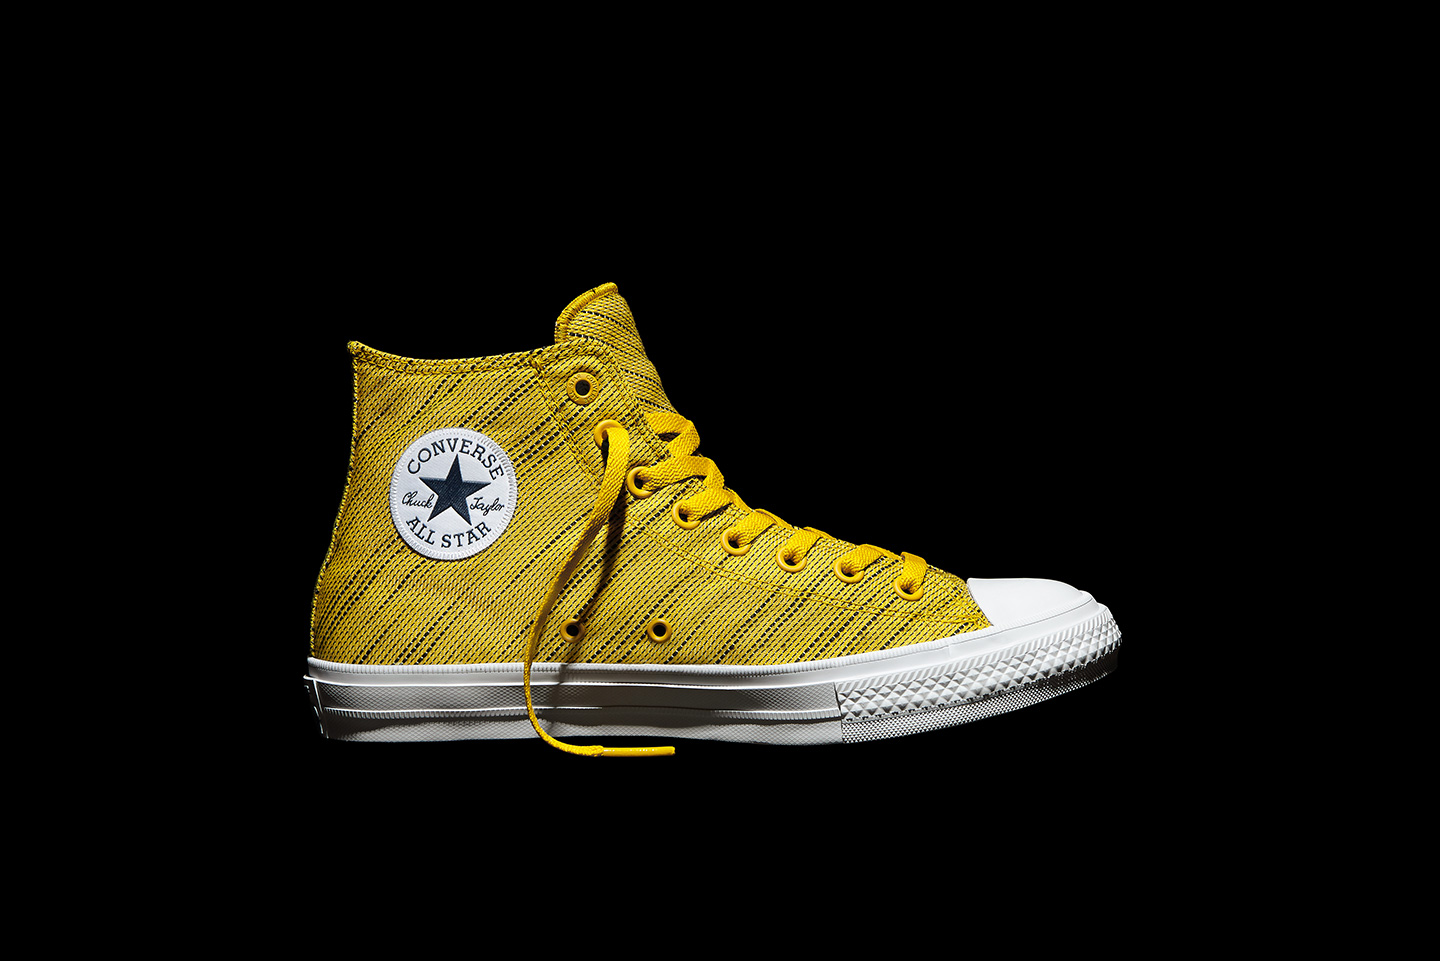 a7d997e6a68 The new Converse Chuck Taylor All Star II Knit collection complements you  for the spring with a launch date of April 25 in Volt Green